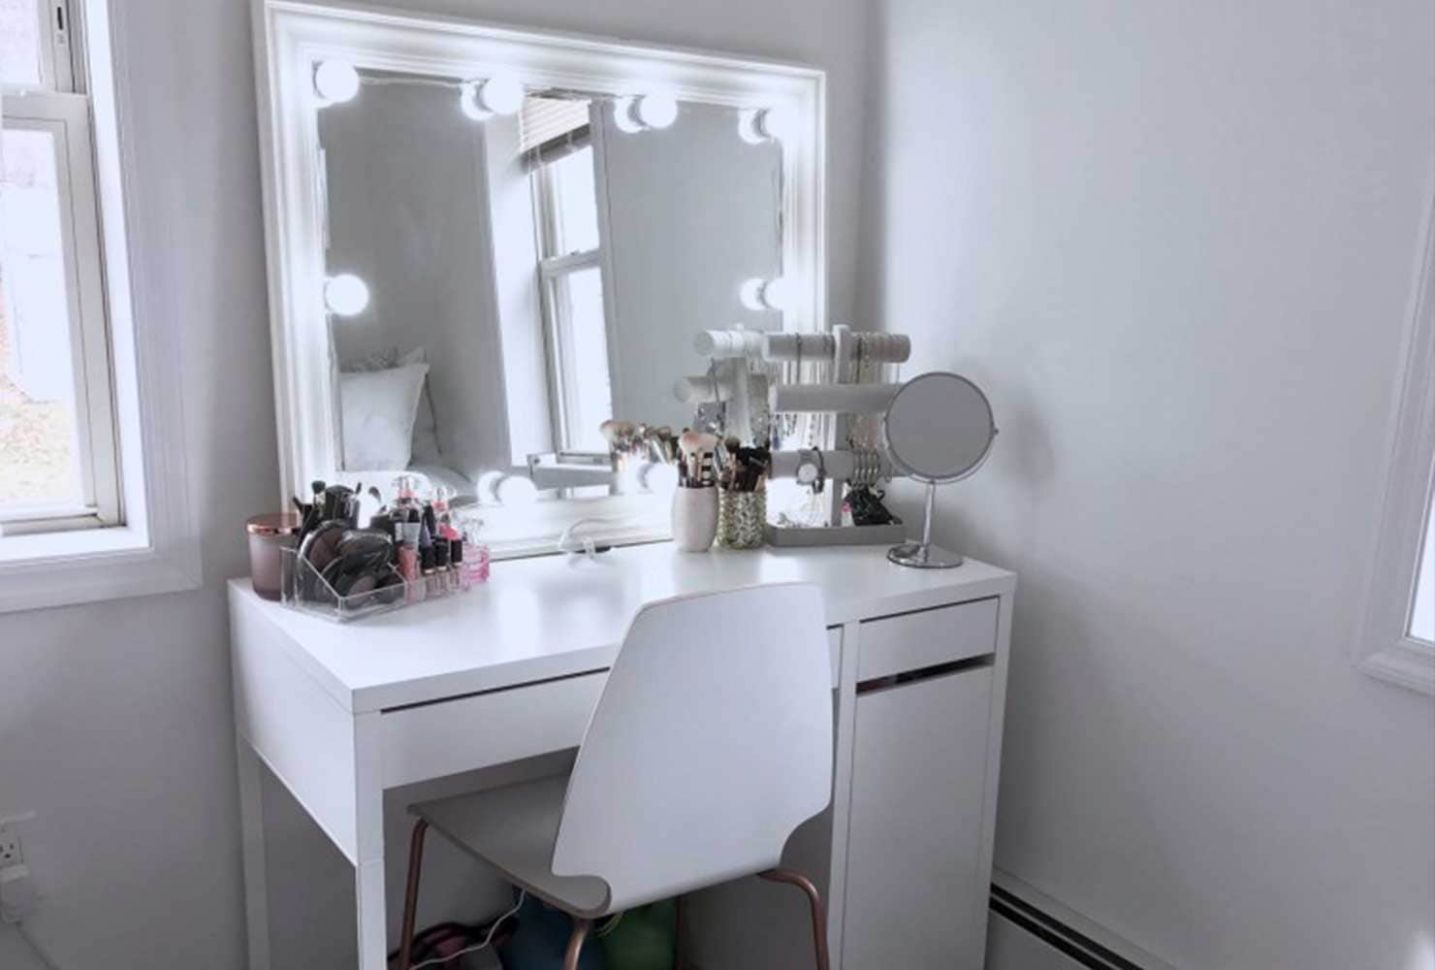 10 Makeup Room Ideas To Brighten Your Morning Routine | Shutterfly - makeup room table